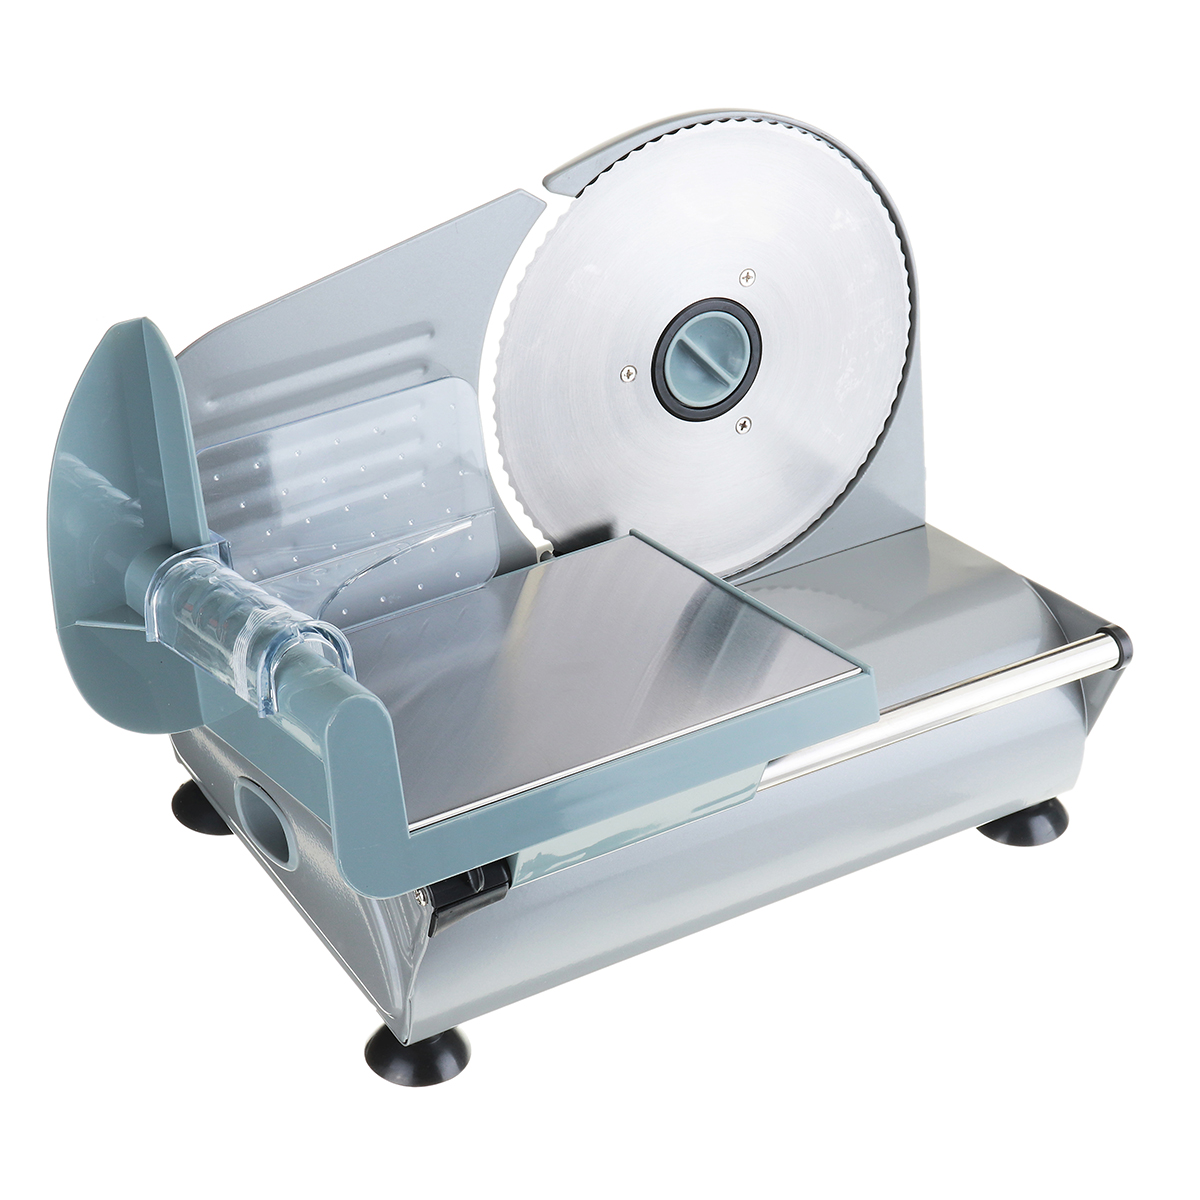 220V 150W Food Slicer Electric Slicer Cutter Vegetable Meat Cutting Machine Stainless Steel